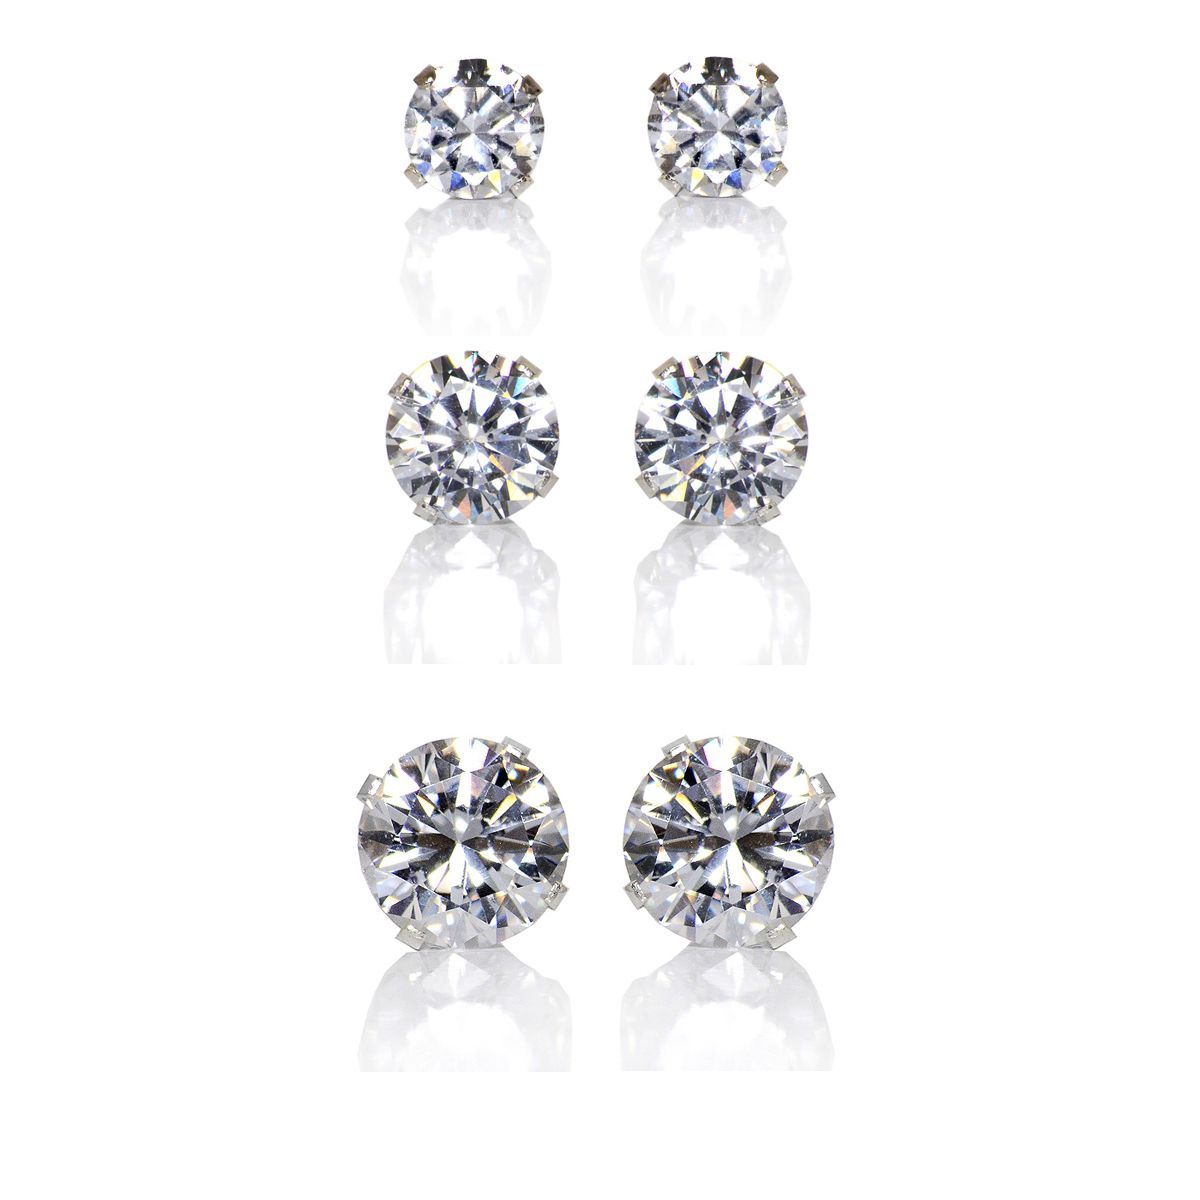 b7acb304c Everyone deserves to look and feel beautiful, and you can with these  affordable, diamond-like cubic zirconia sterling silver earring studs. This  set ...